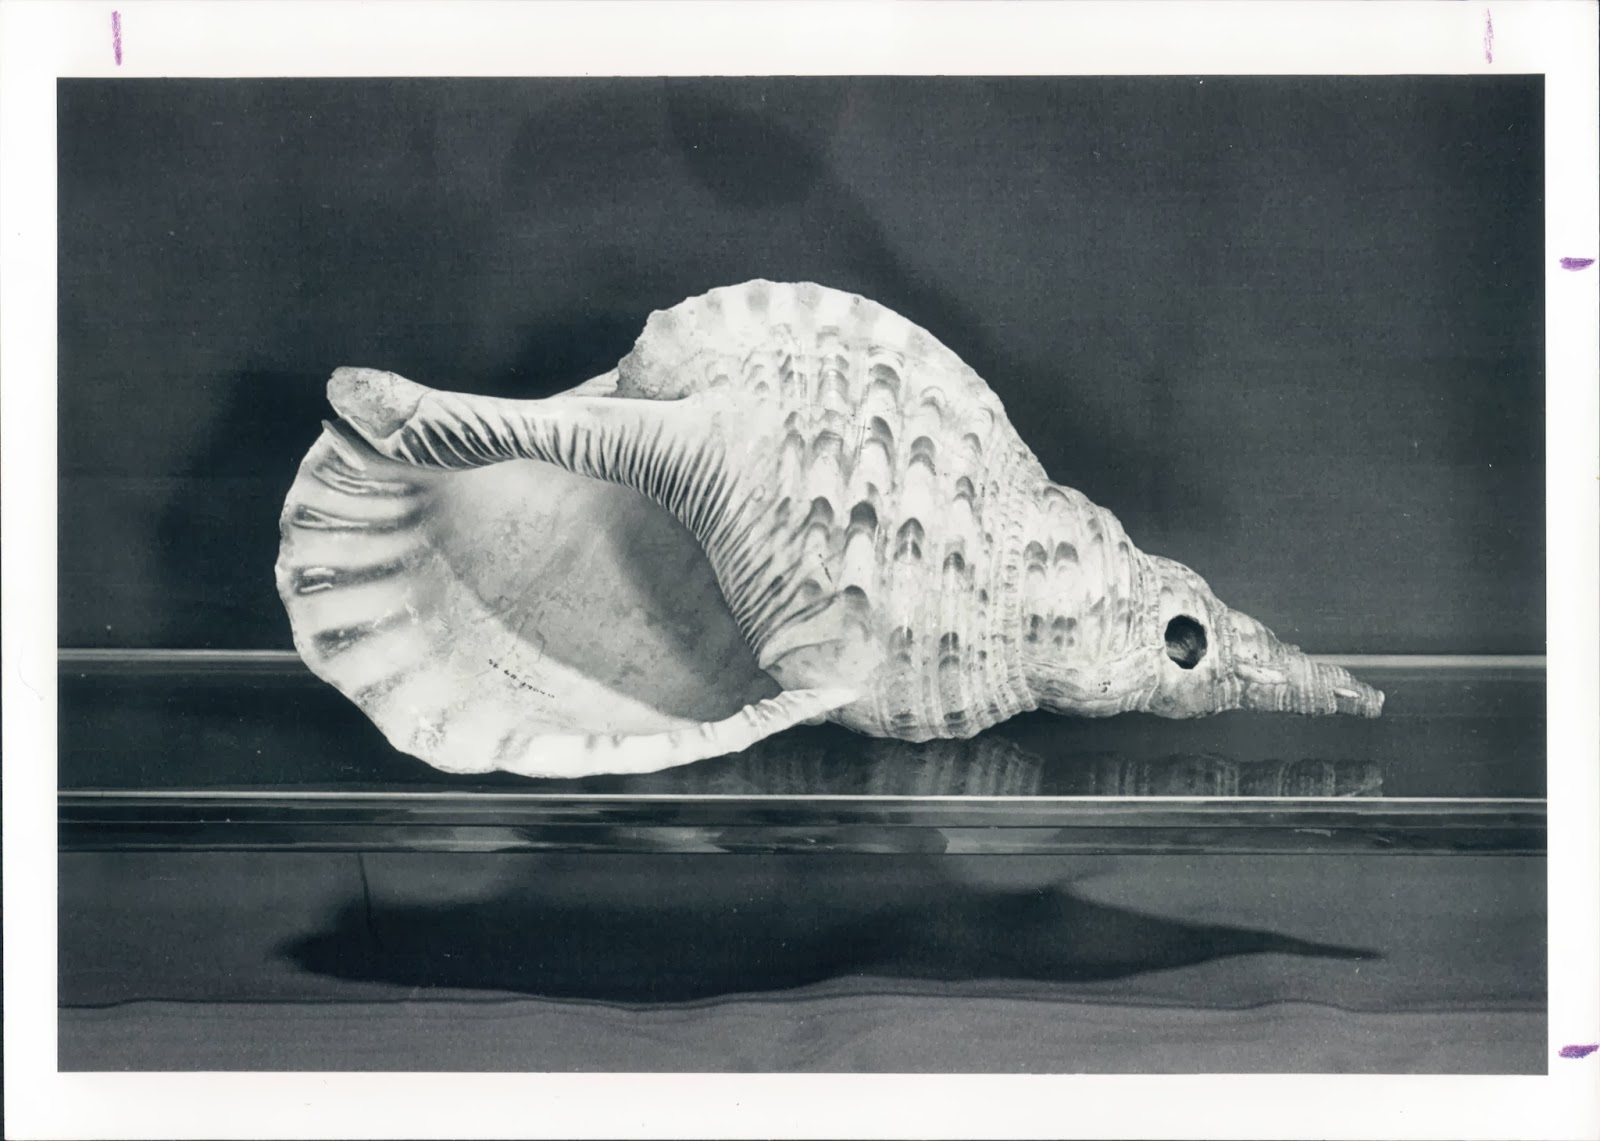 A black and white photograph of a conch shell.